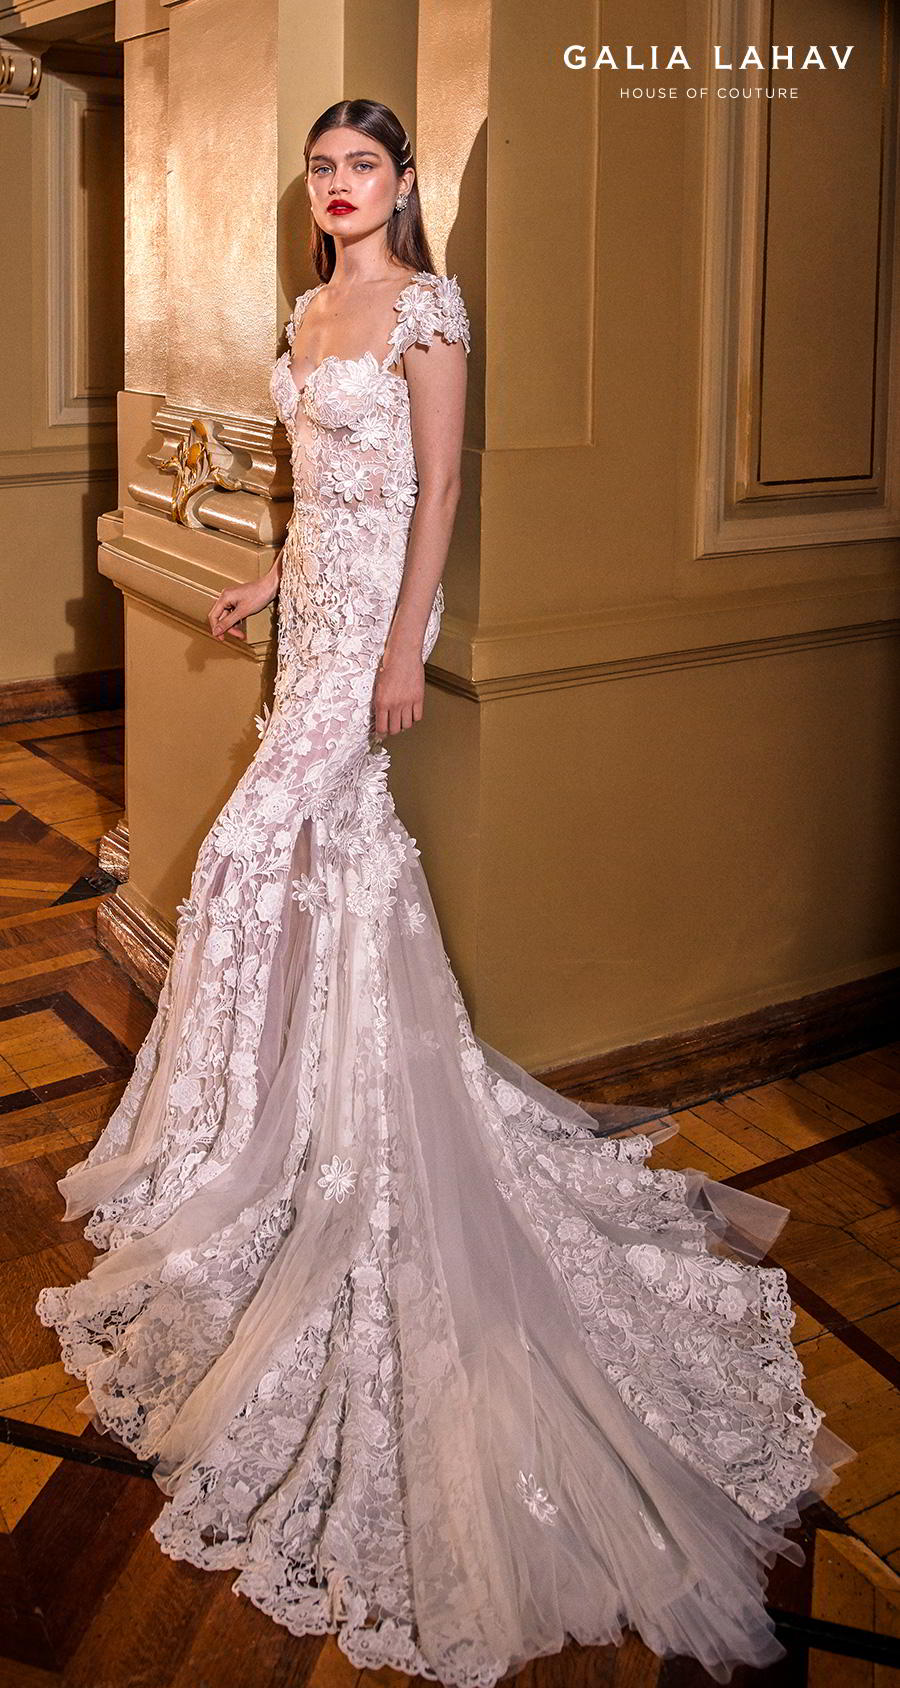 Sweetheart Dress Embellished Soft Tulle Flare Wedding And Line And Fit Neckline Lace